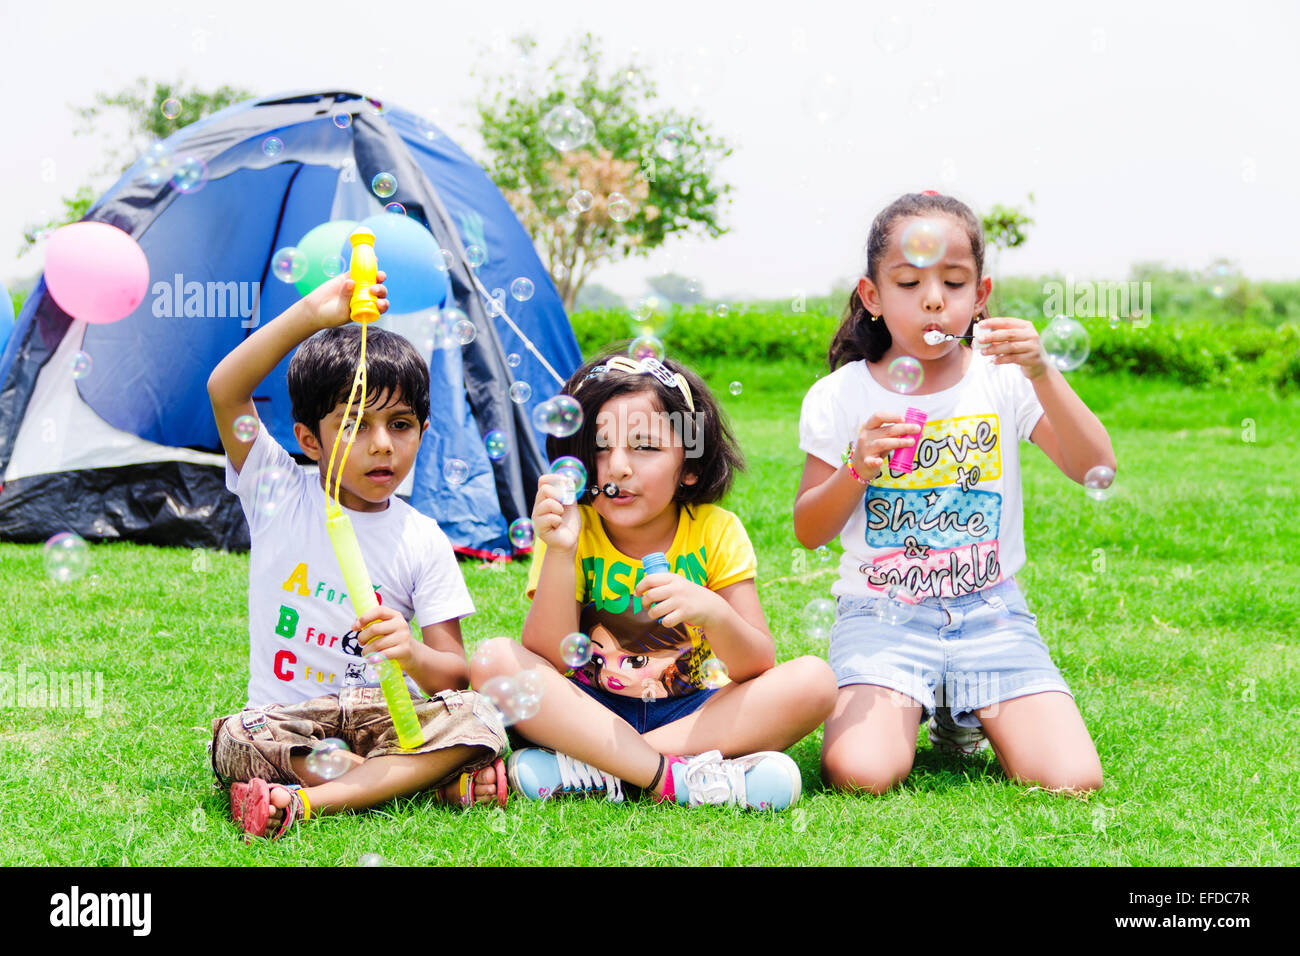 3 indian children friends Picnic park playing Bubble Wand ...